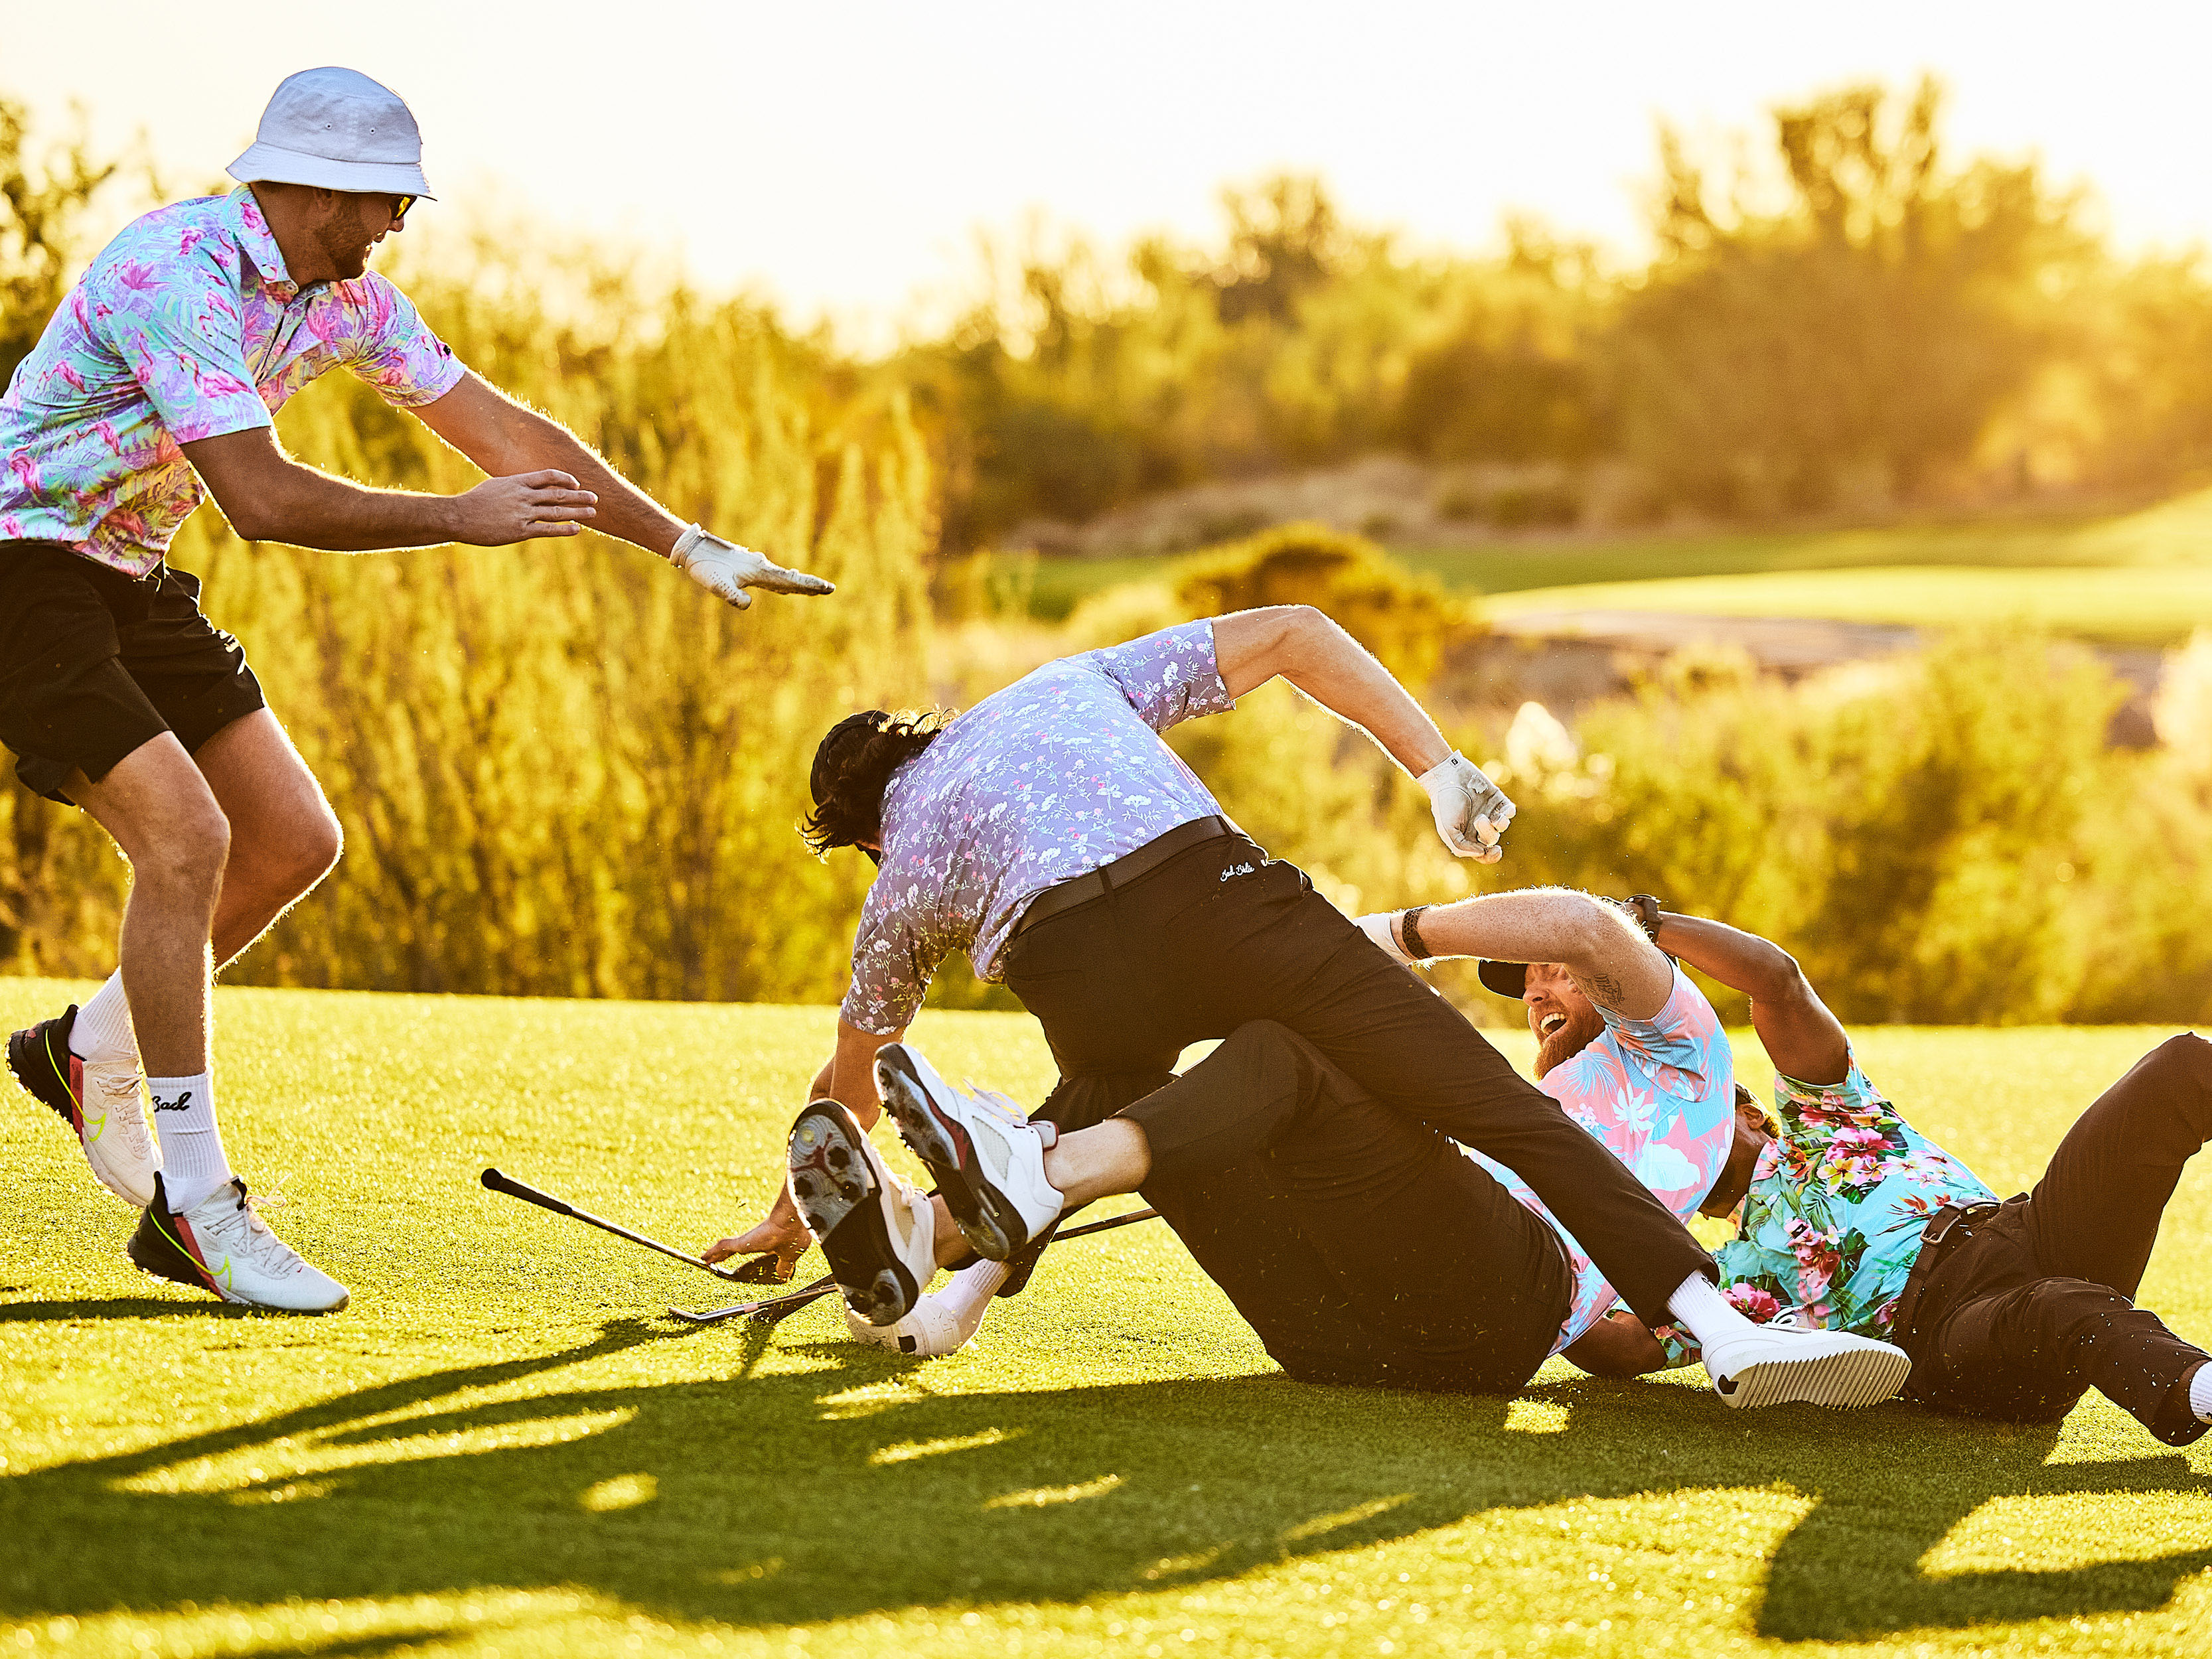 Bad Birdie Golf - Stephen Denton Photography - Los Angeles, CA Commercial Photographer